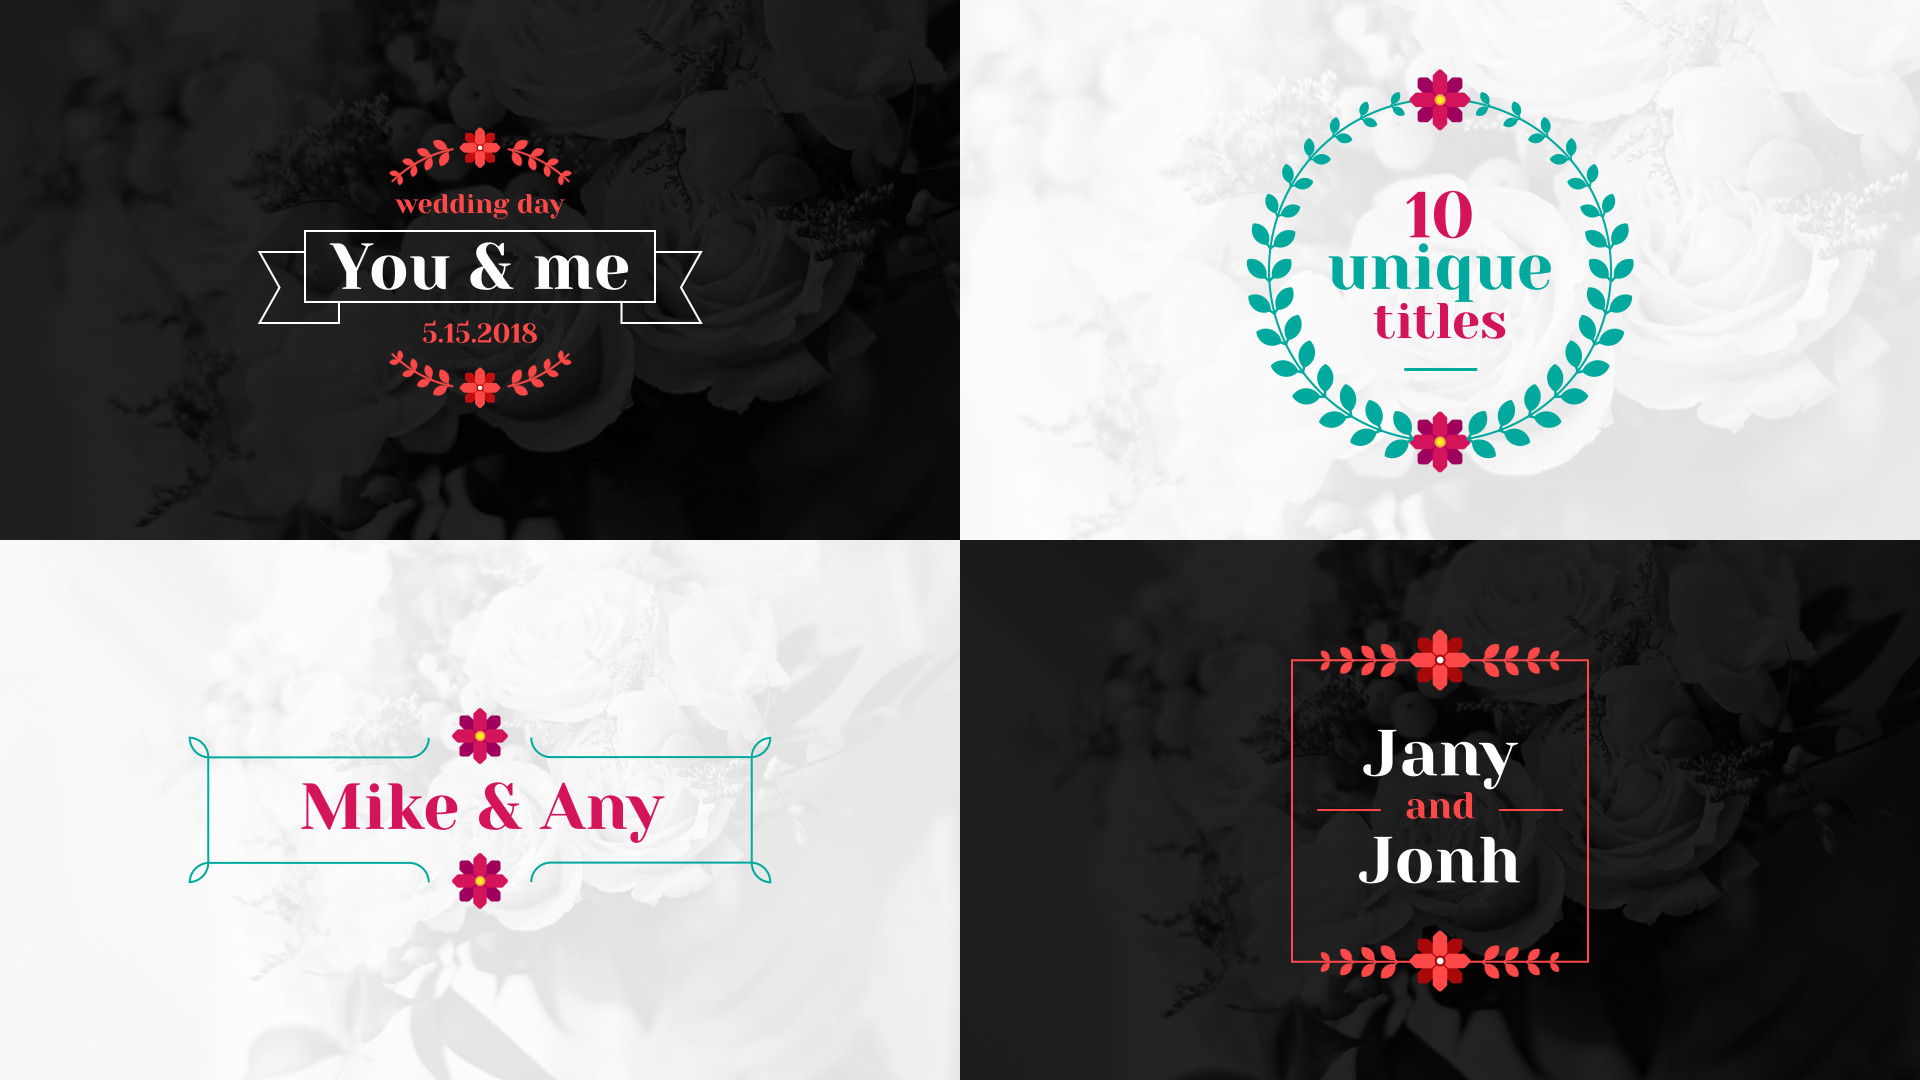 Floral Wedding Titles - After Effects 84109